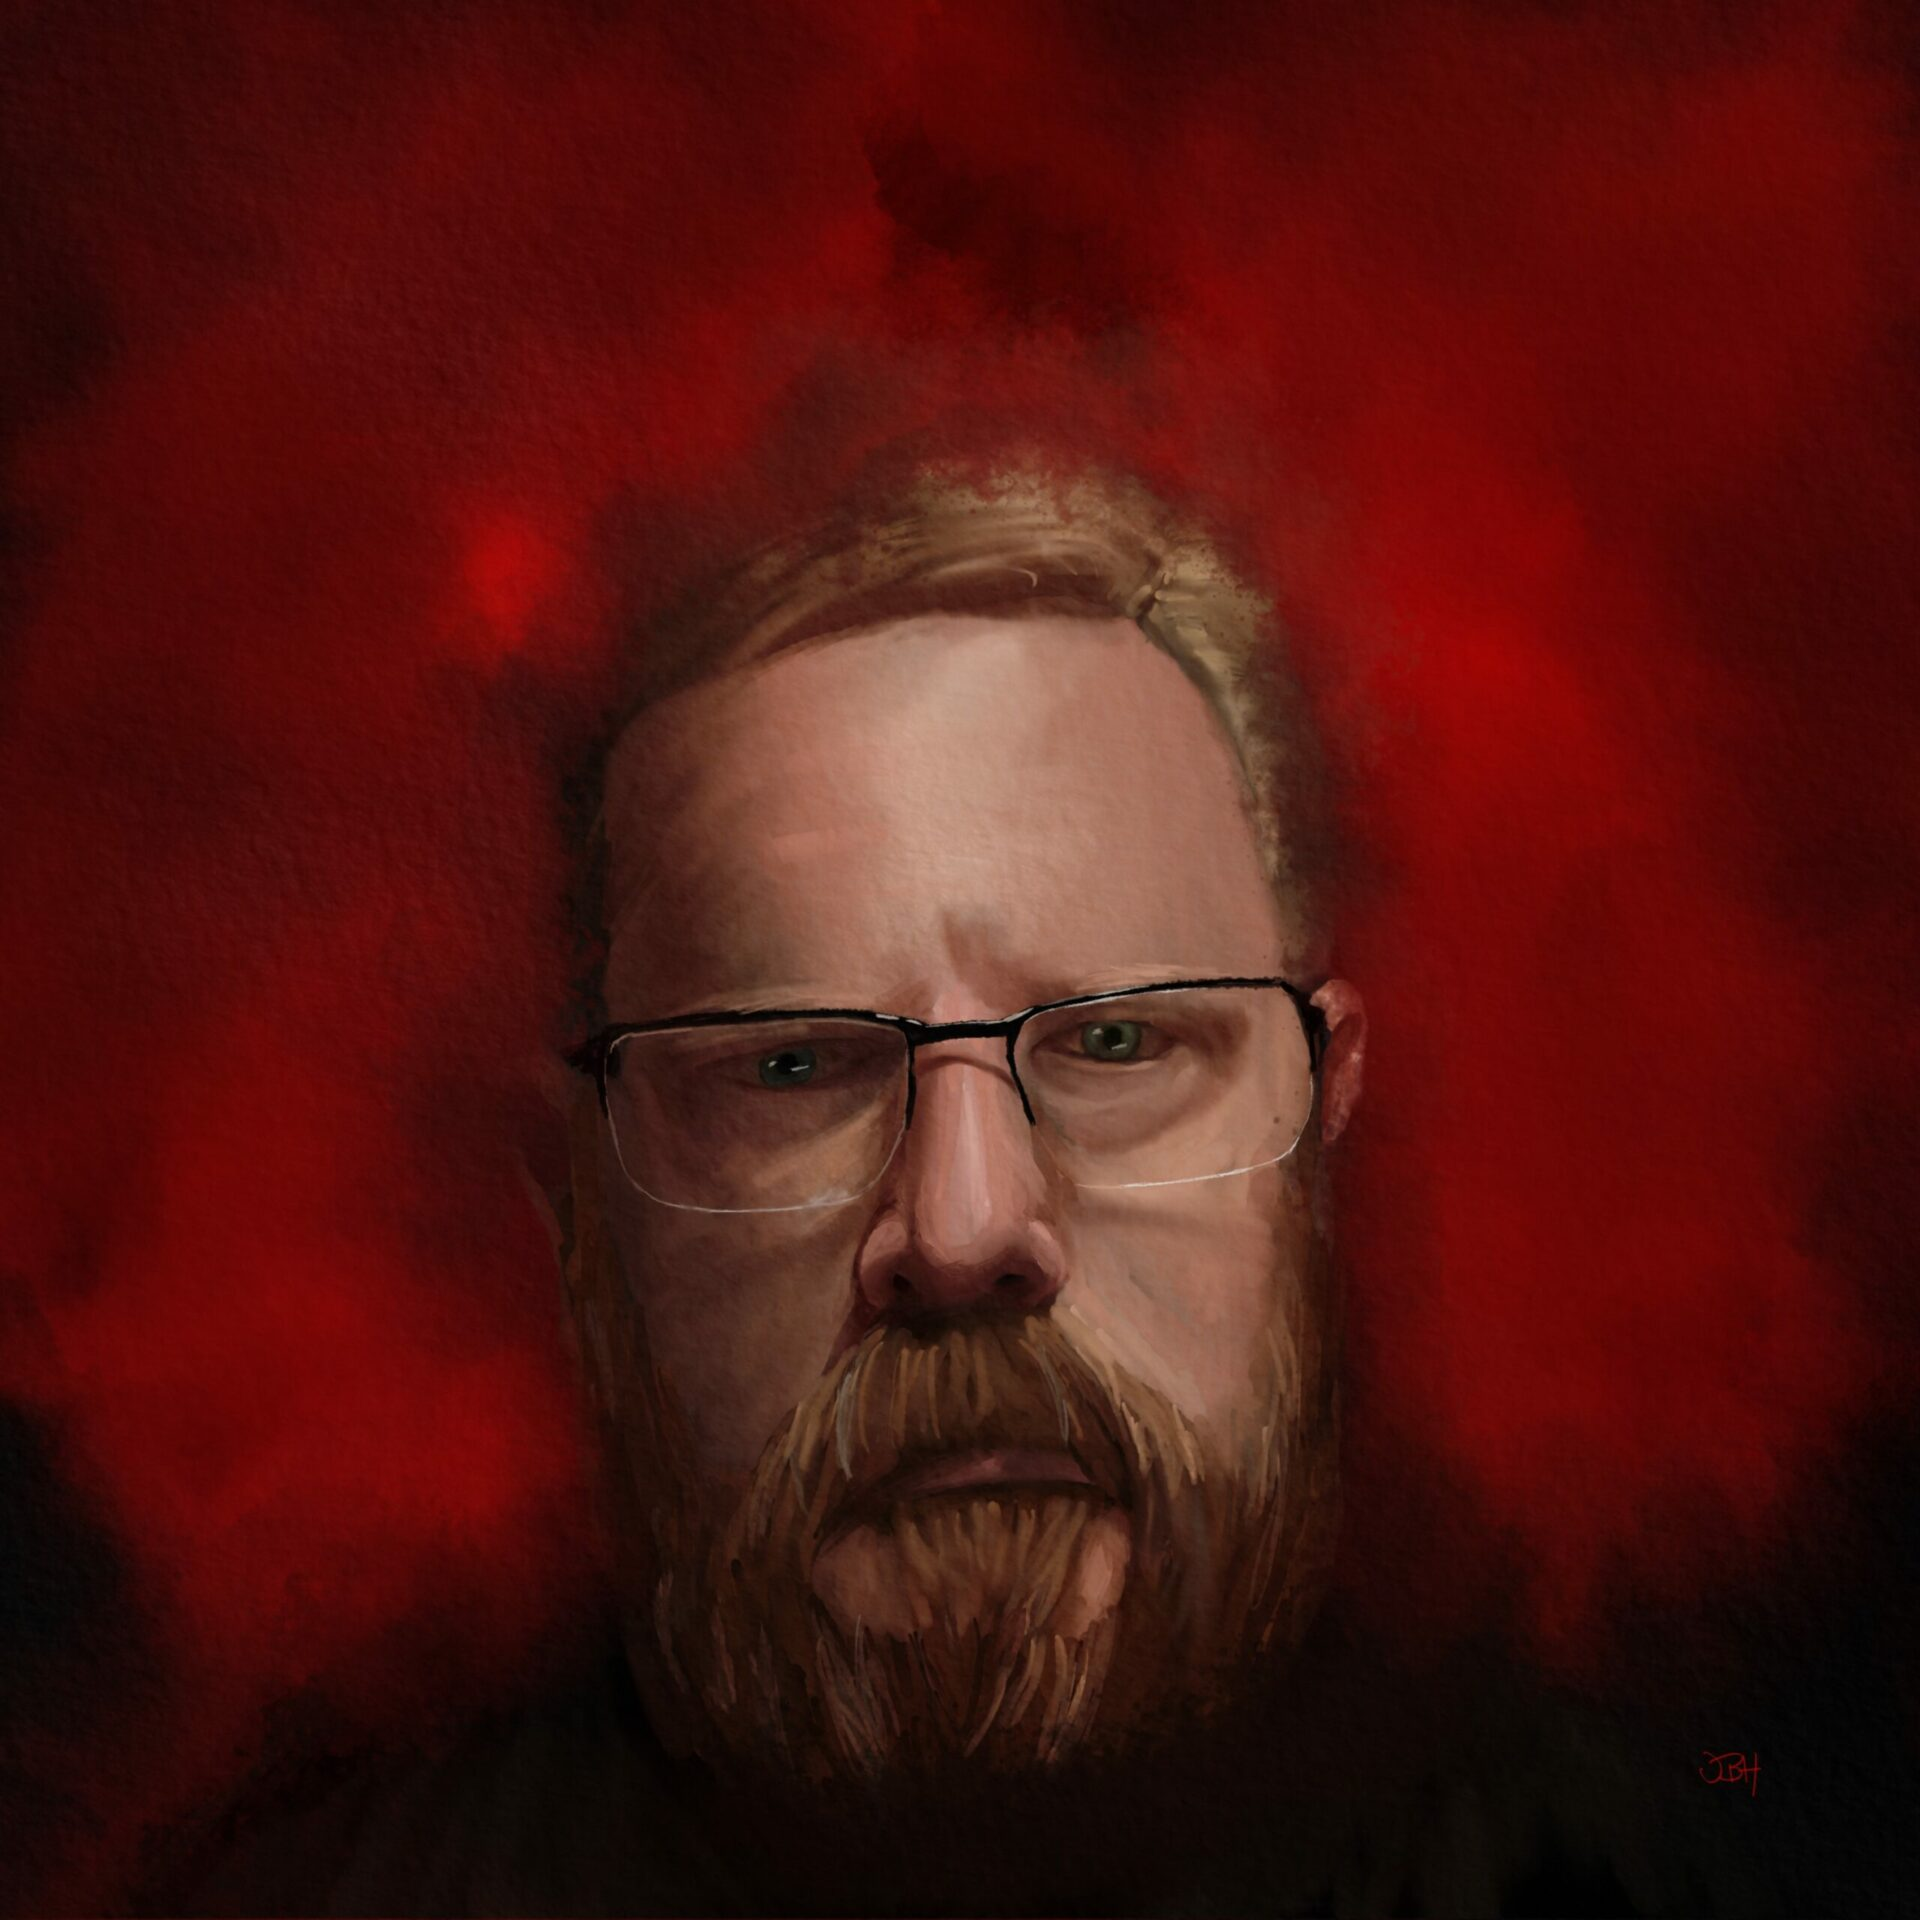 A moody self portrait painting in watercolour